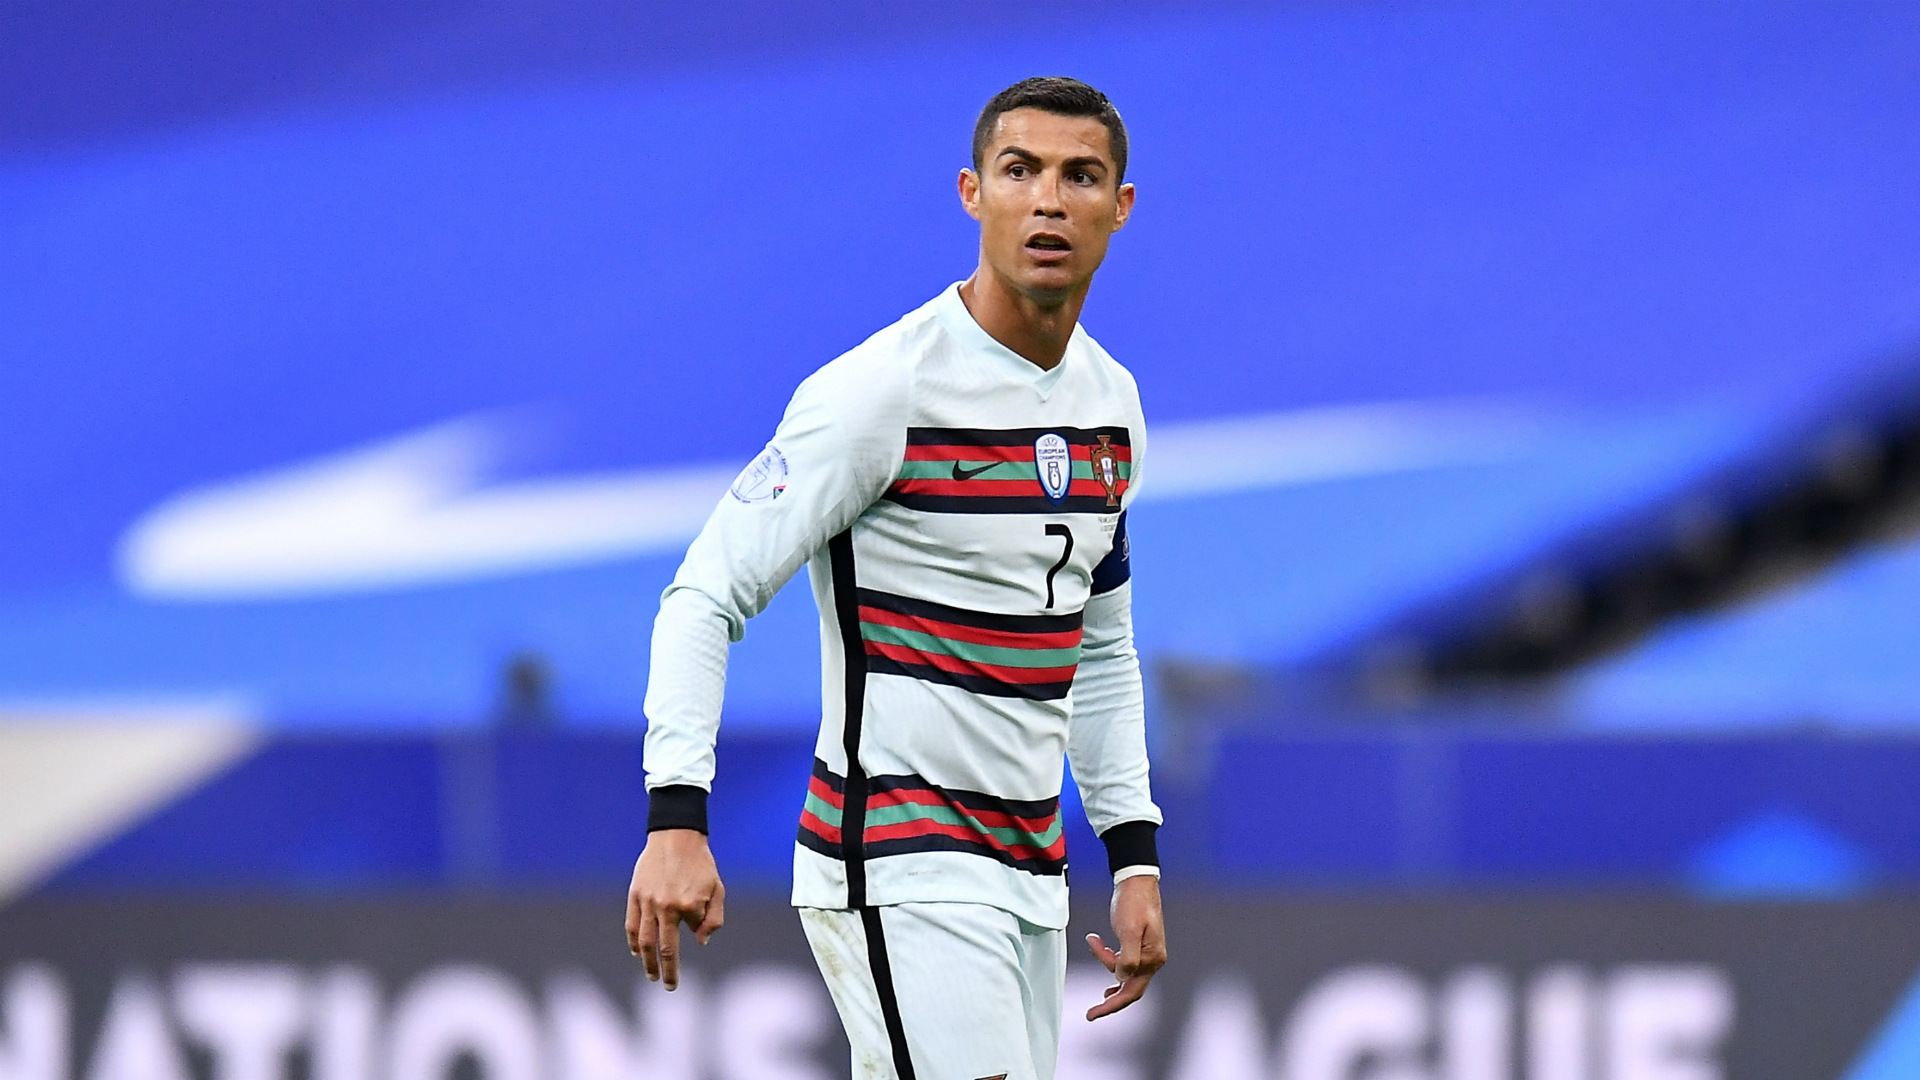 Italy's minister for sport believes Ronaldo may have breached coronavirus protocols